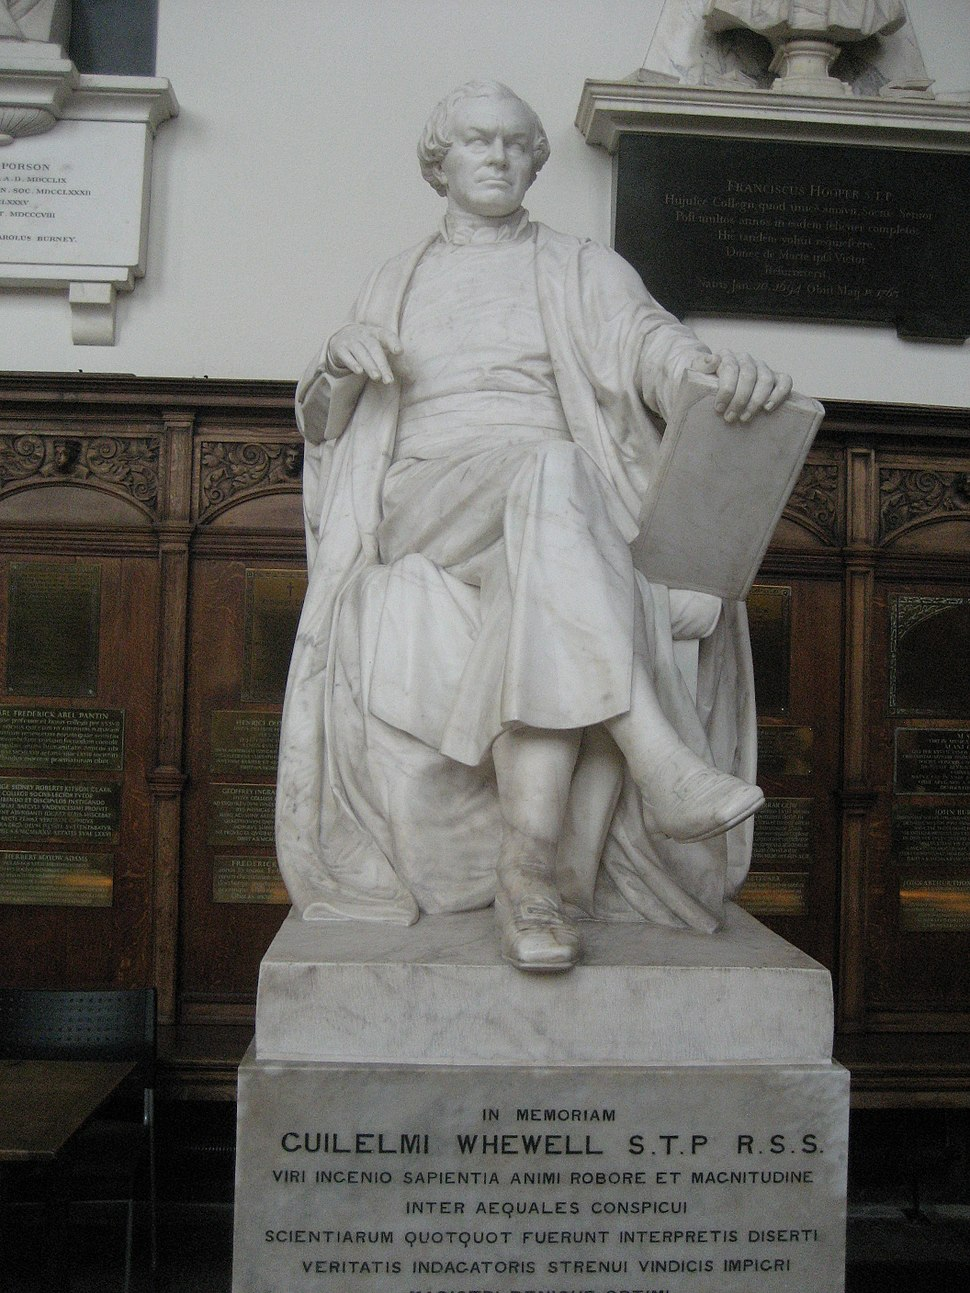 Statue of William Whewell at Trinity College, Cambridge